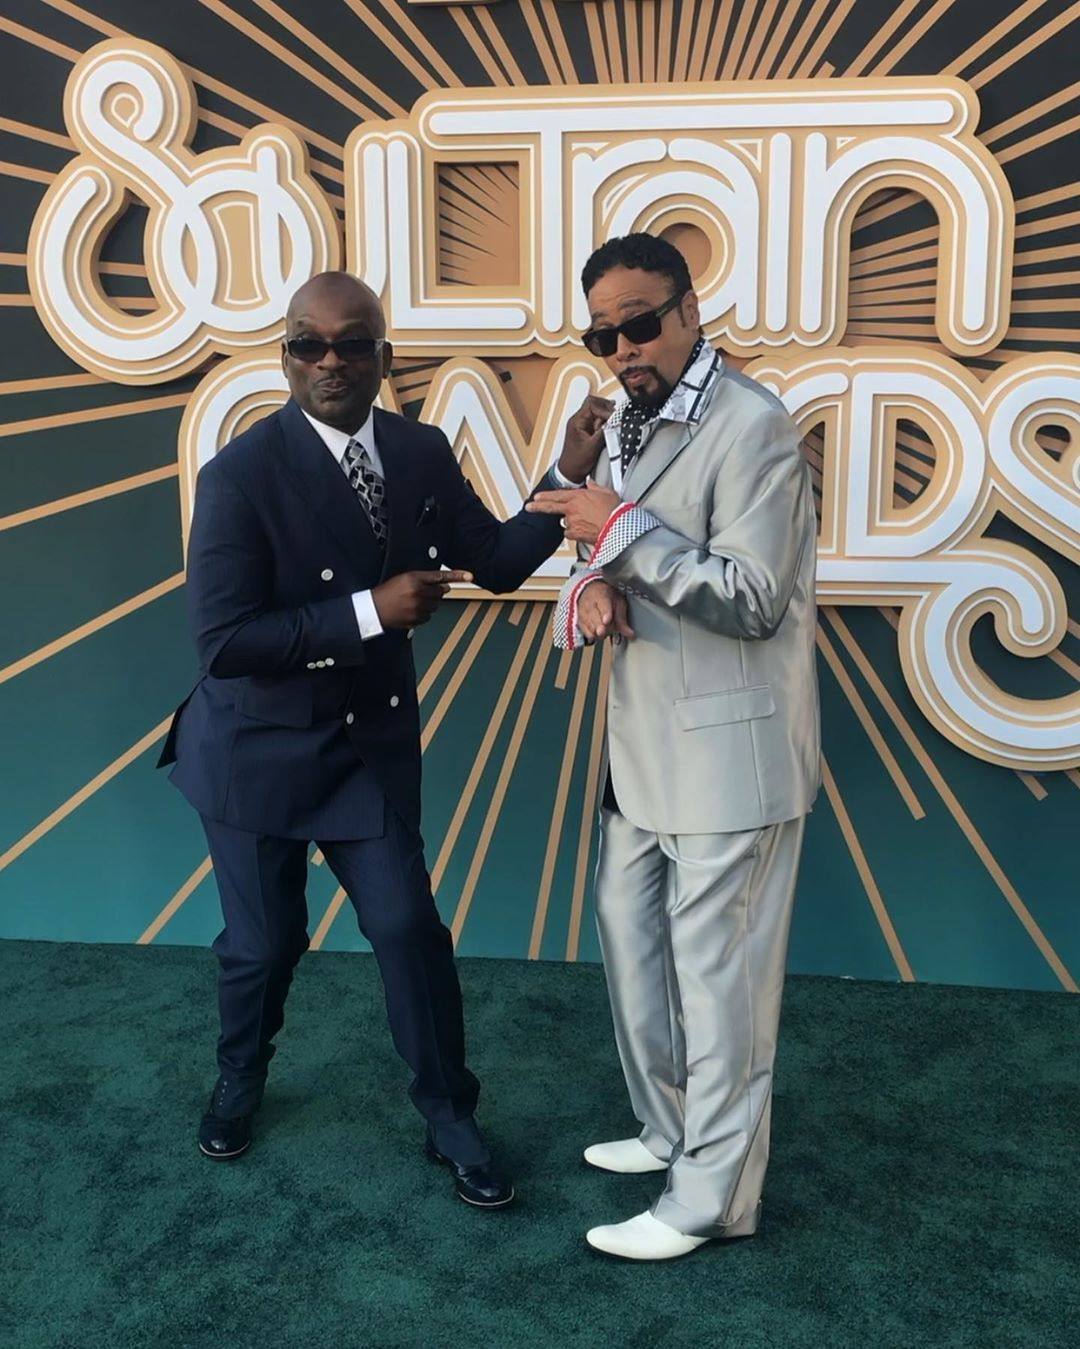 """Morris Day on Instagram: """"Bout to go down! #soultrainawards #bet"""" 